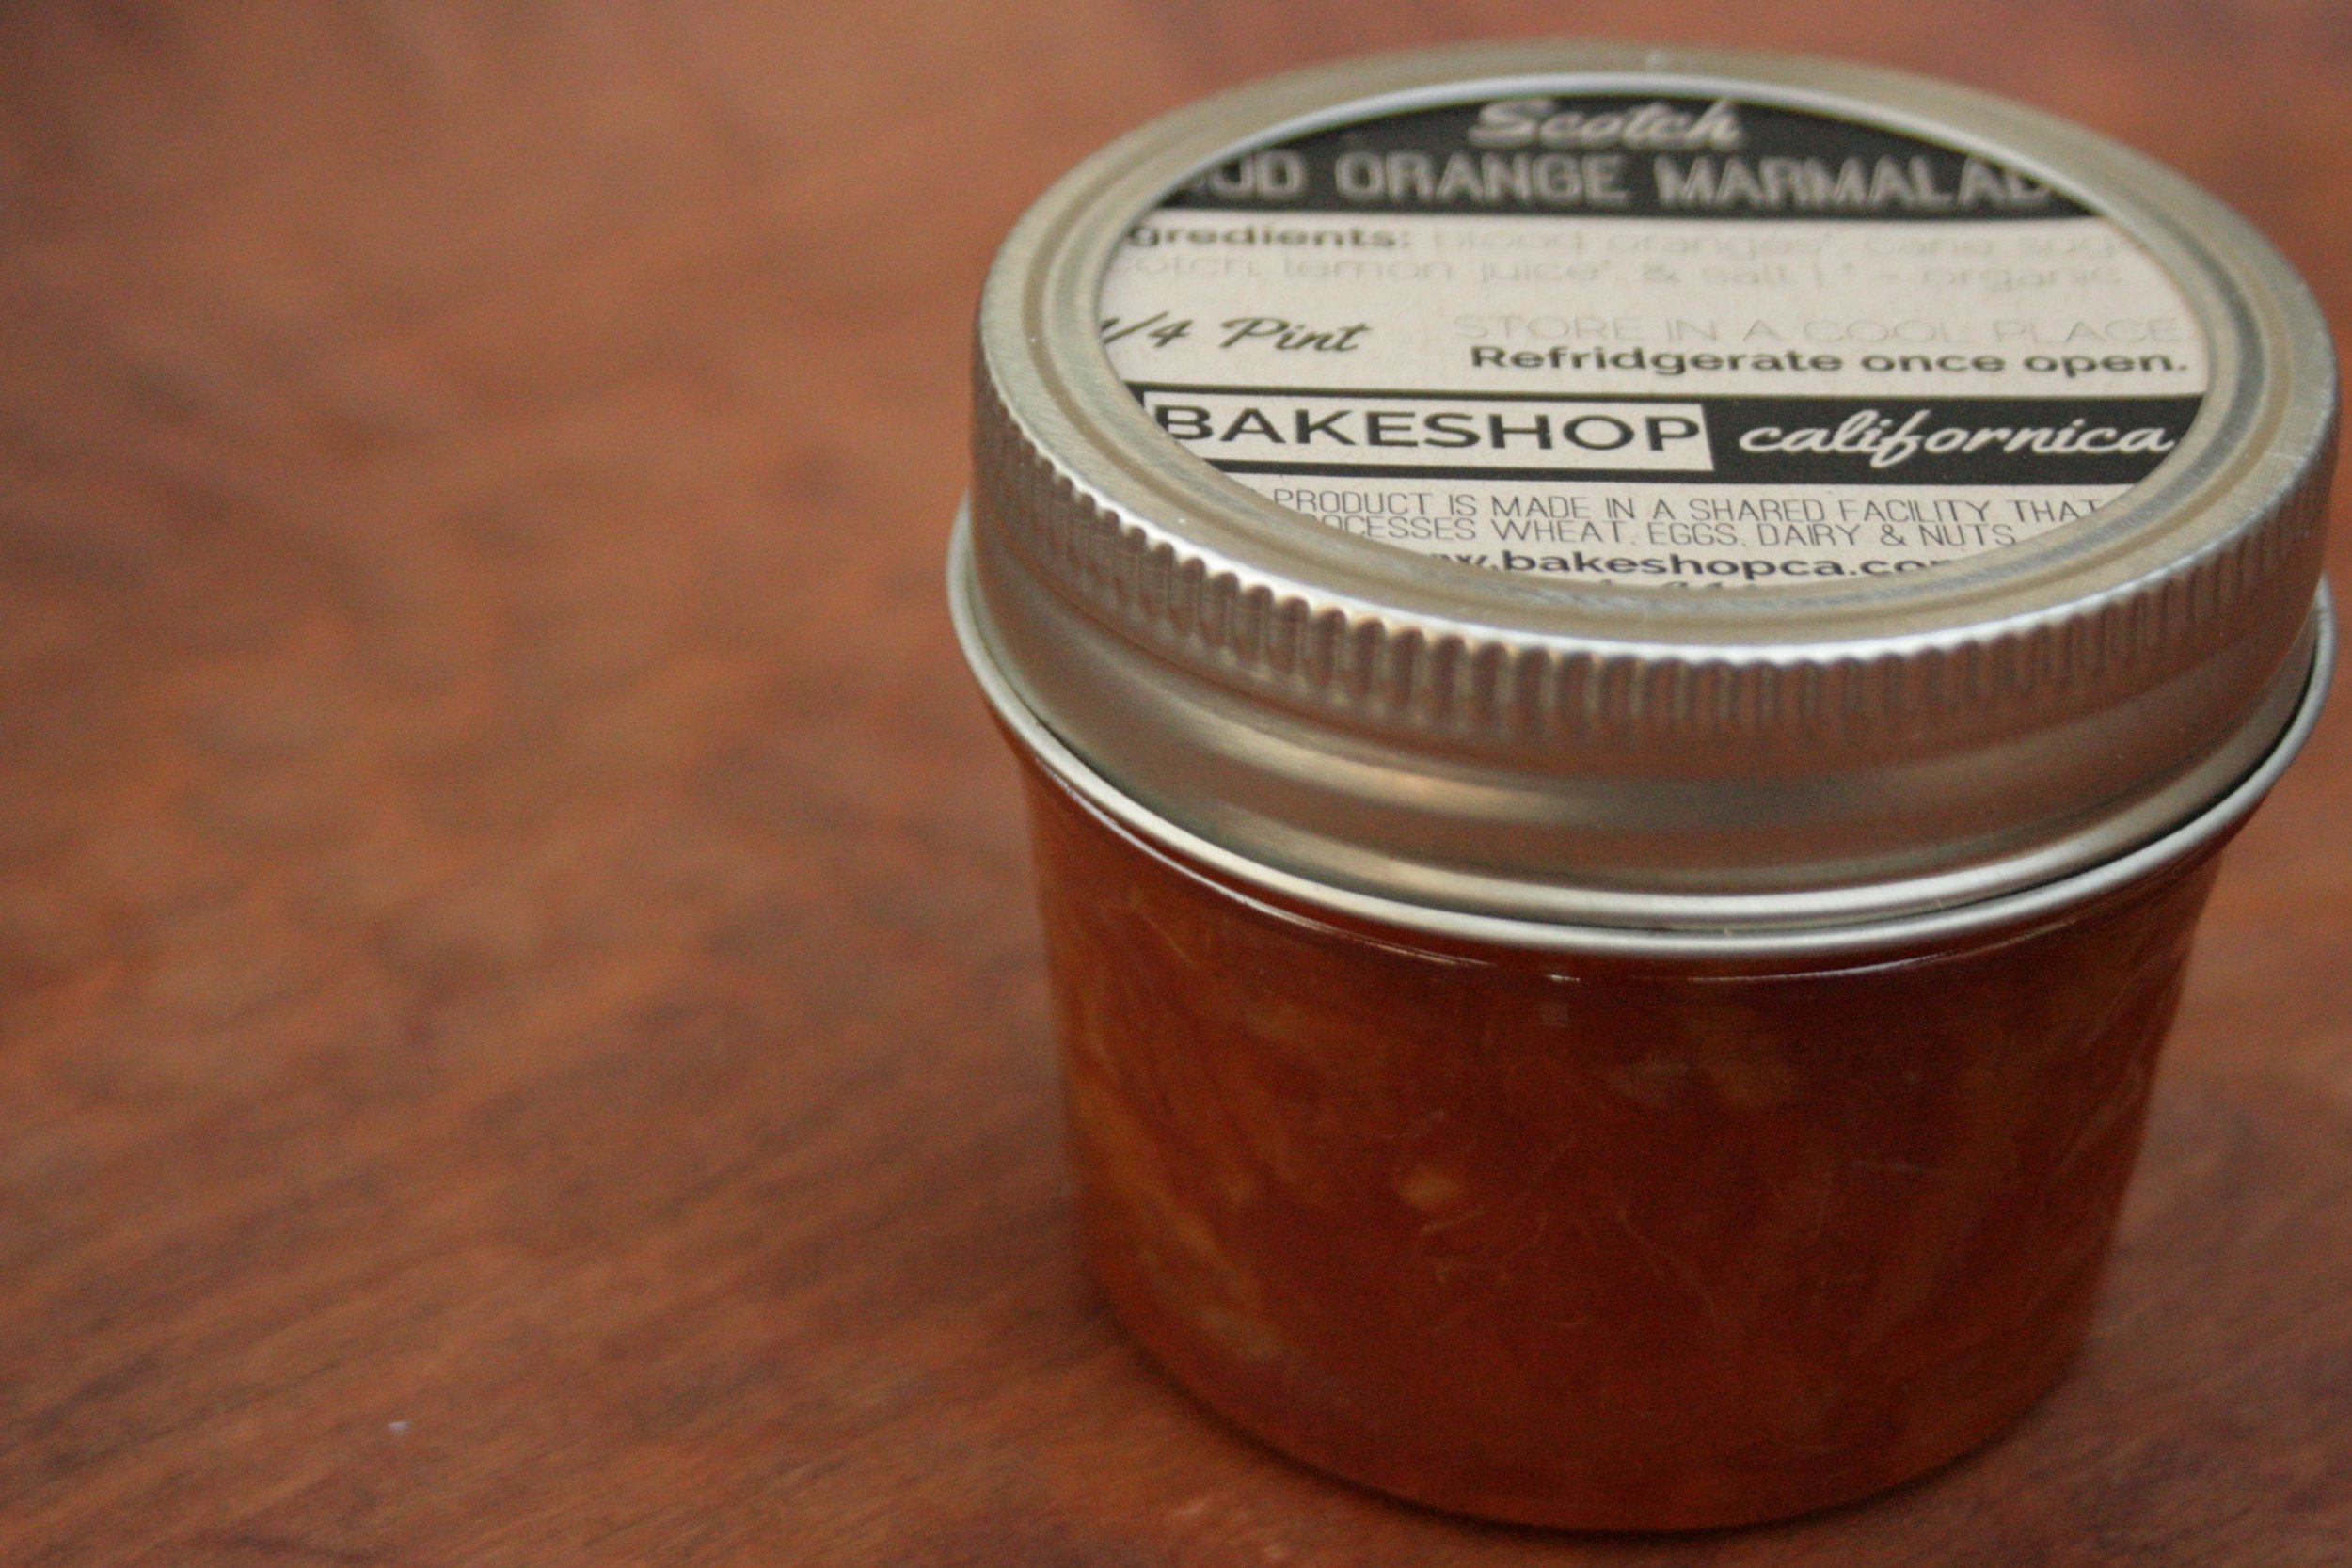 Scotch Blood Orange Marmalade.jpg